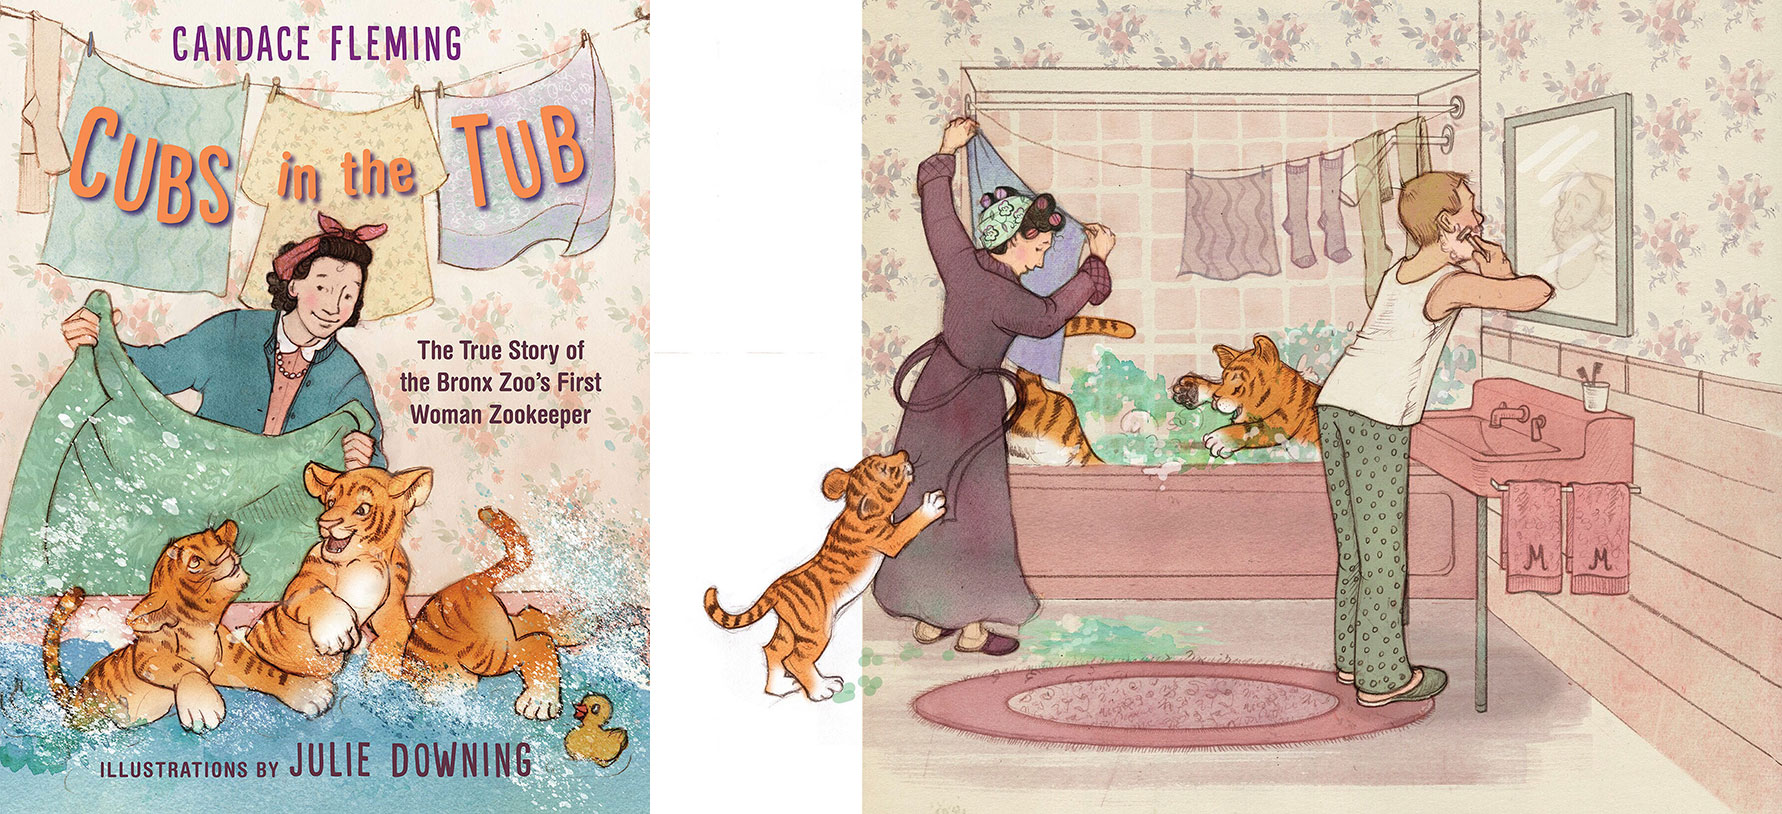 Watercolor cover and page spread of children's book Cubs in the Tub